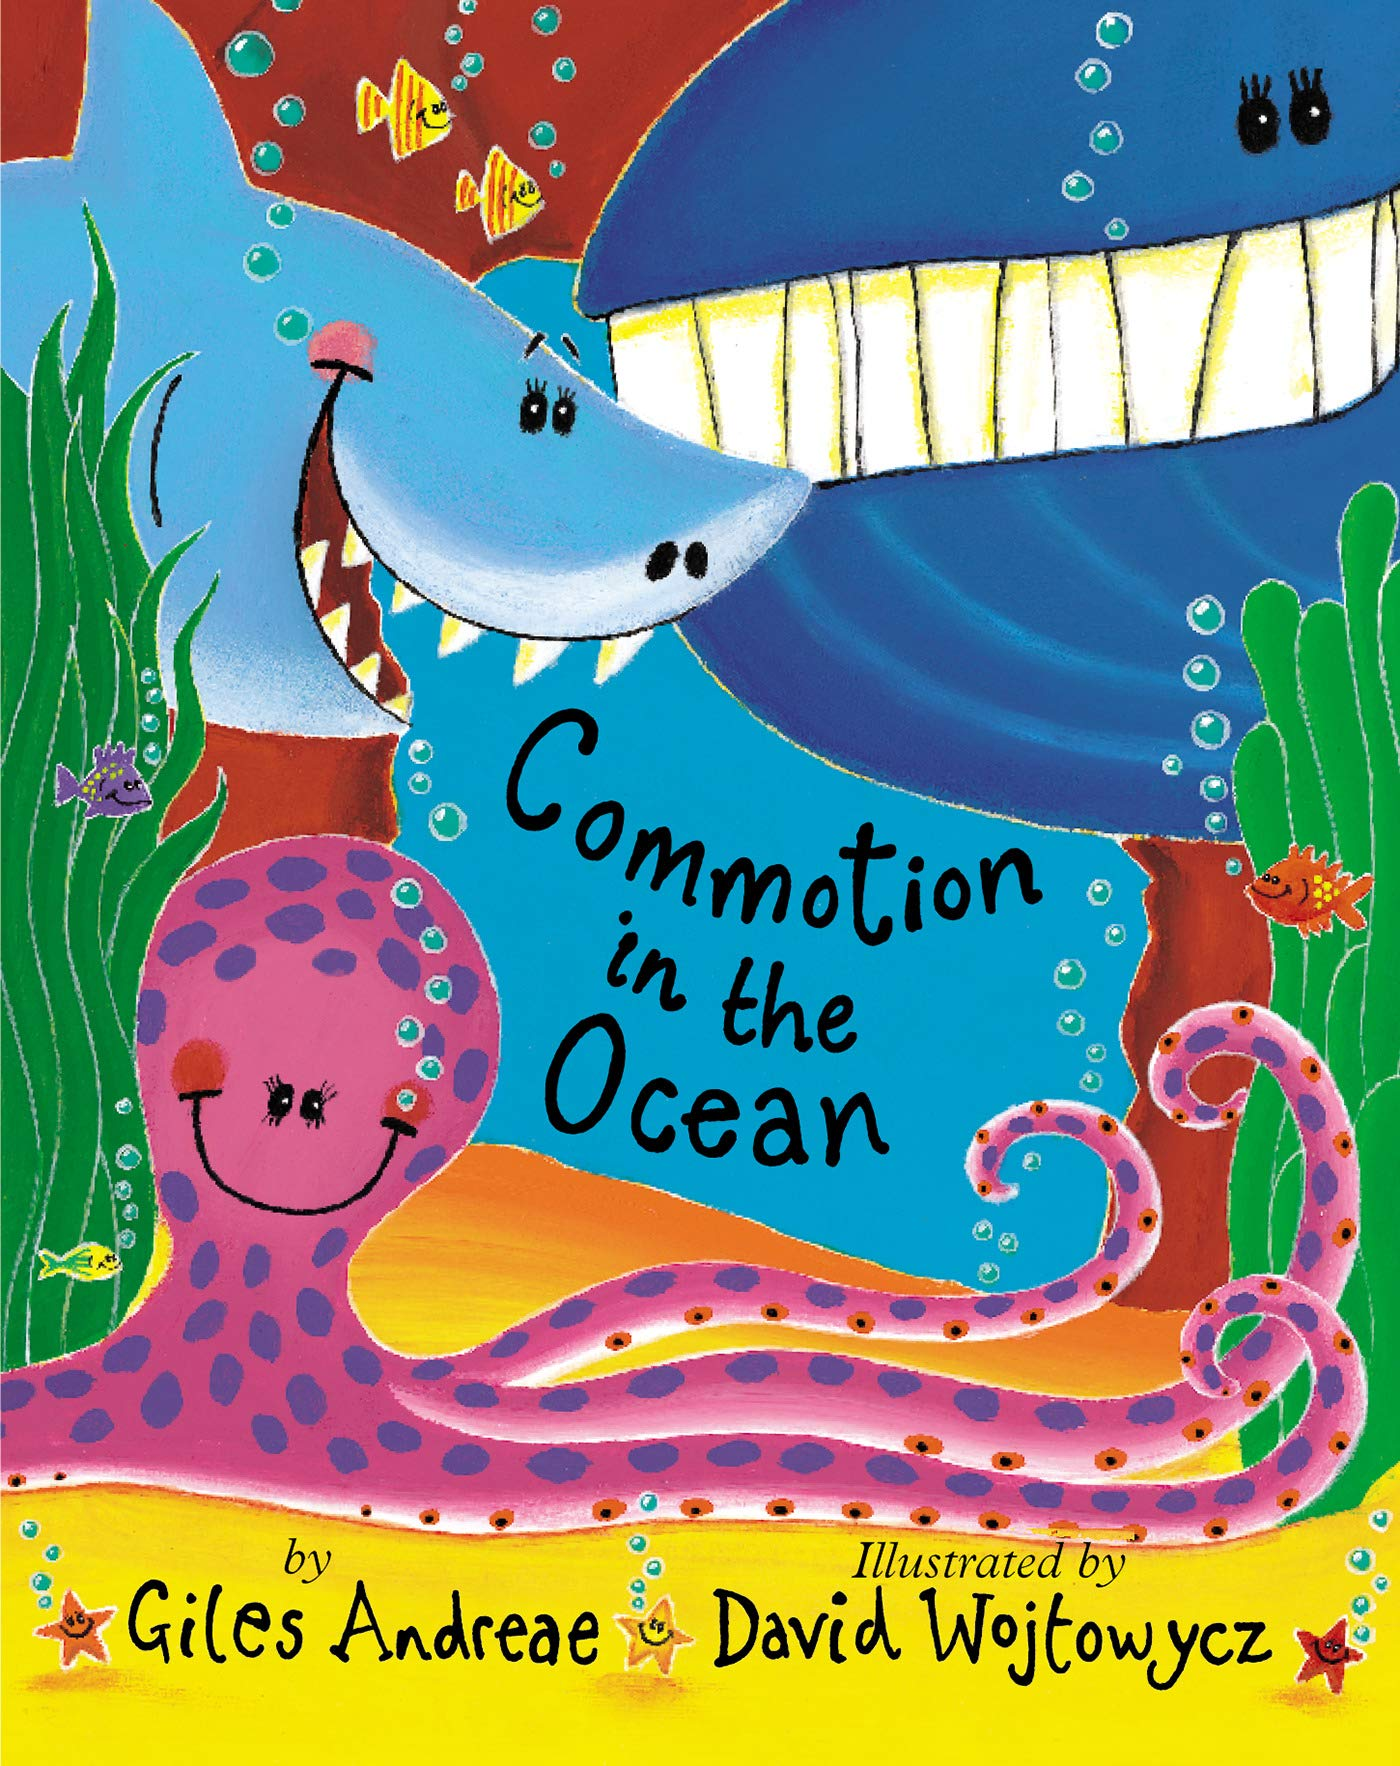 Commotion in the Ocean Book Cover